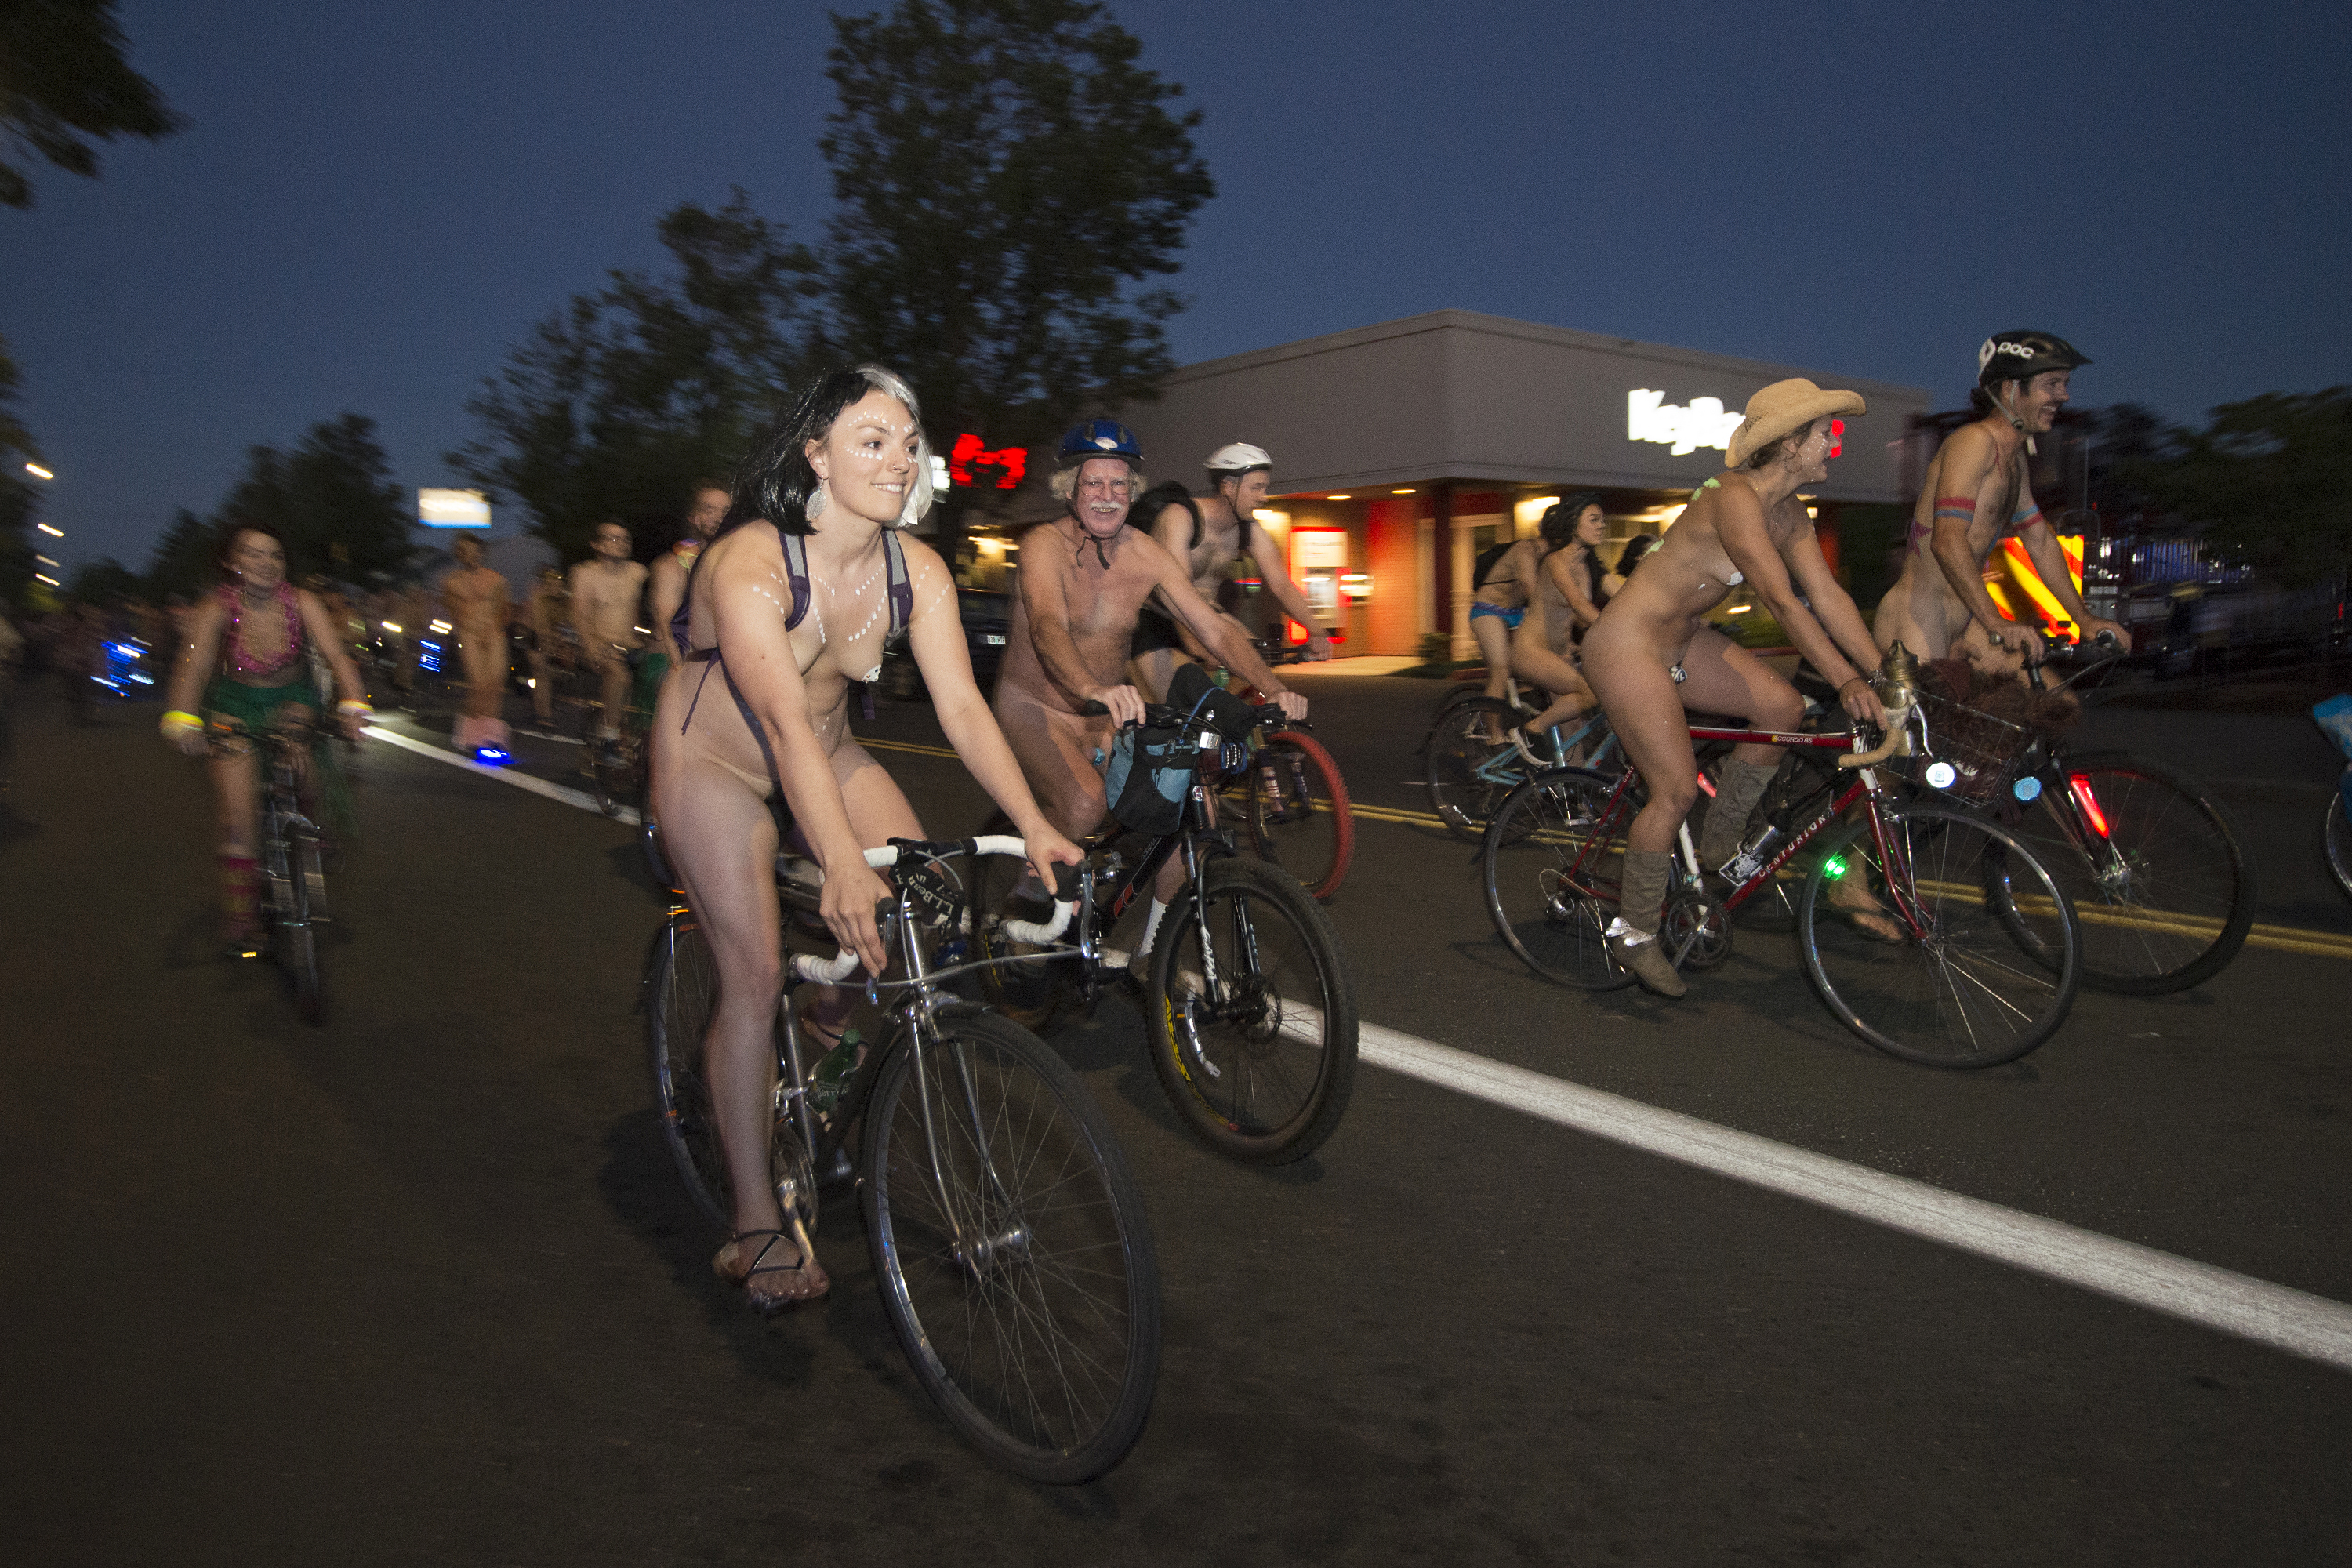 WNBR_WorldNakedBikeRide2016_JeffWalls_DSC4415